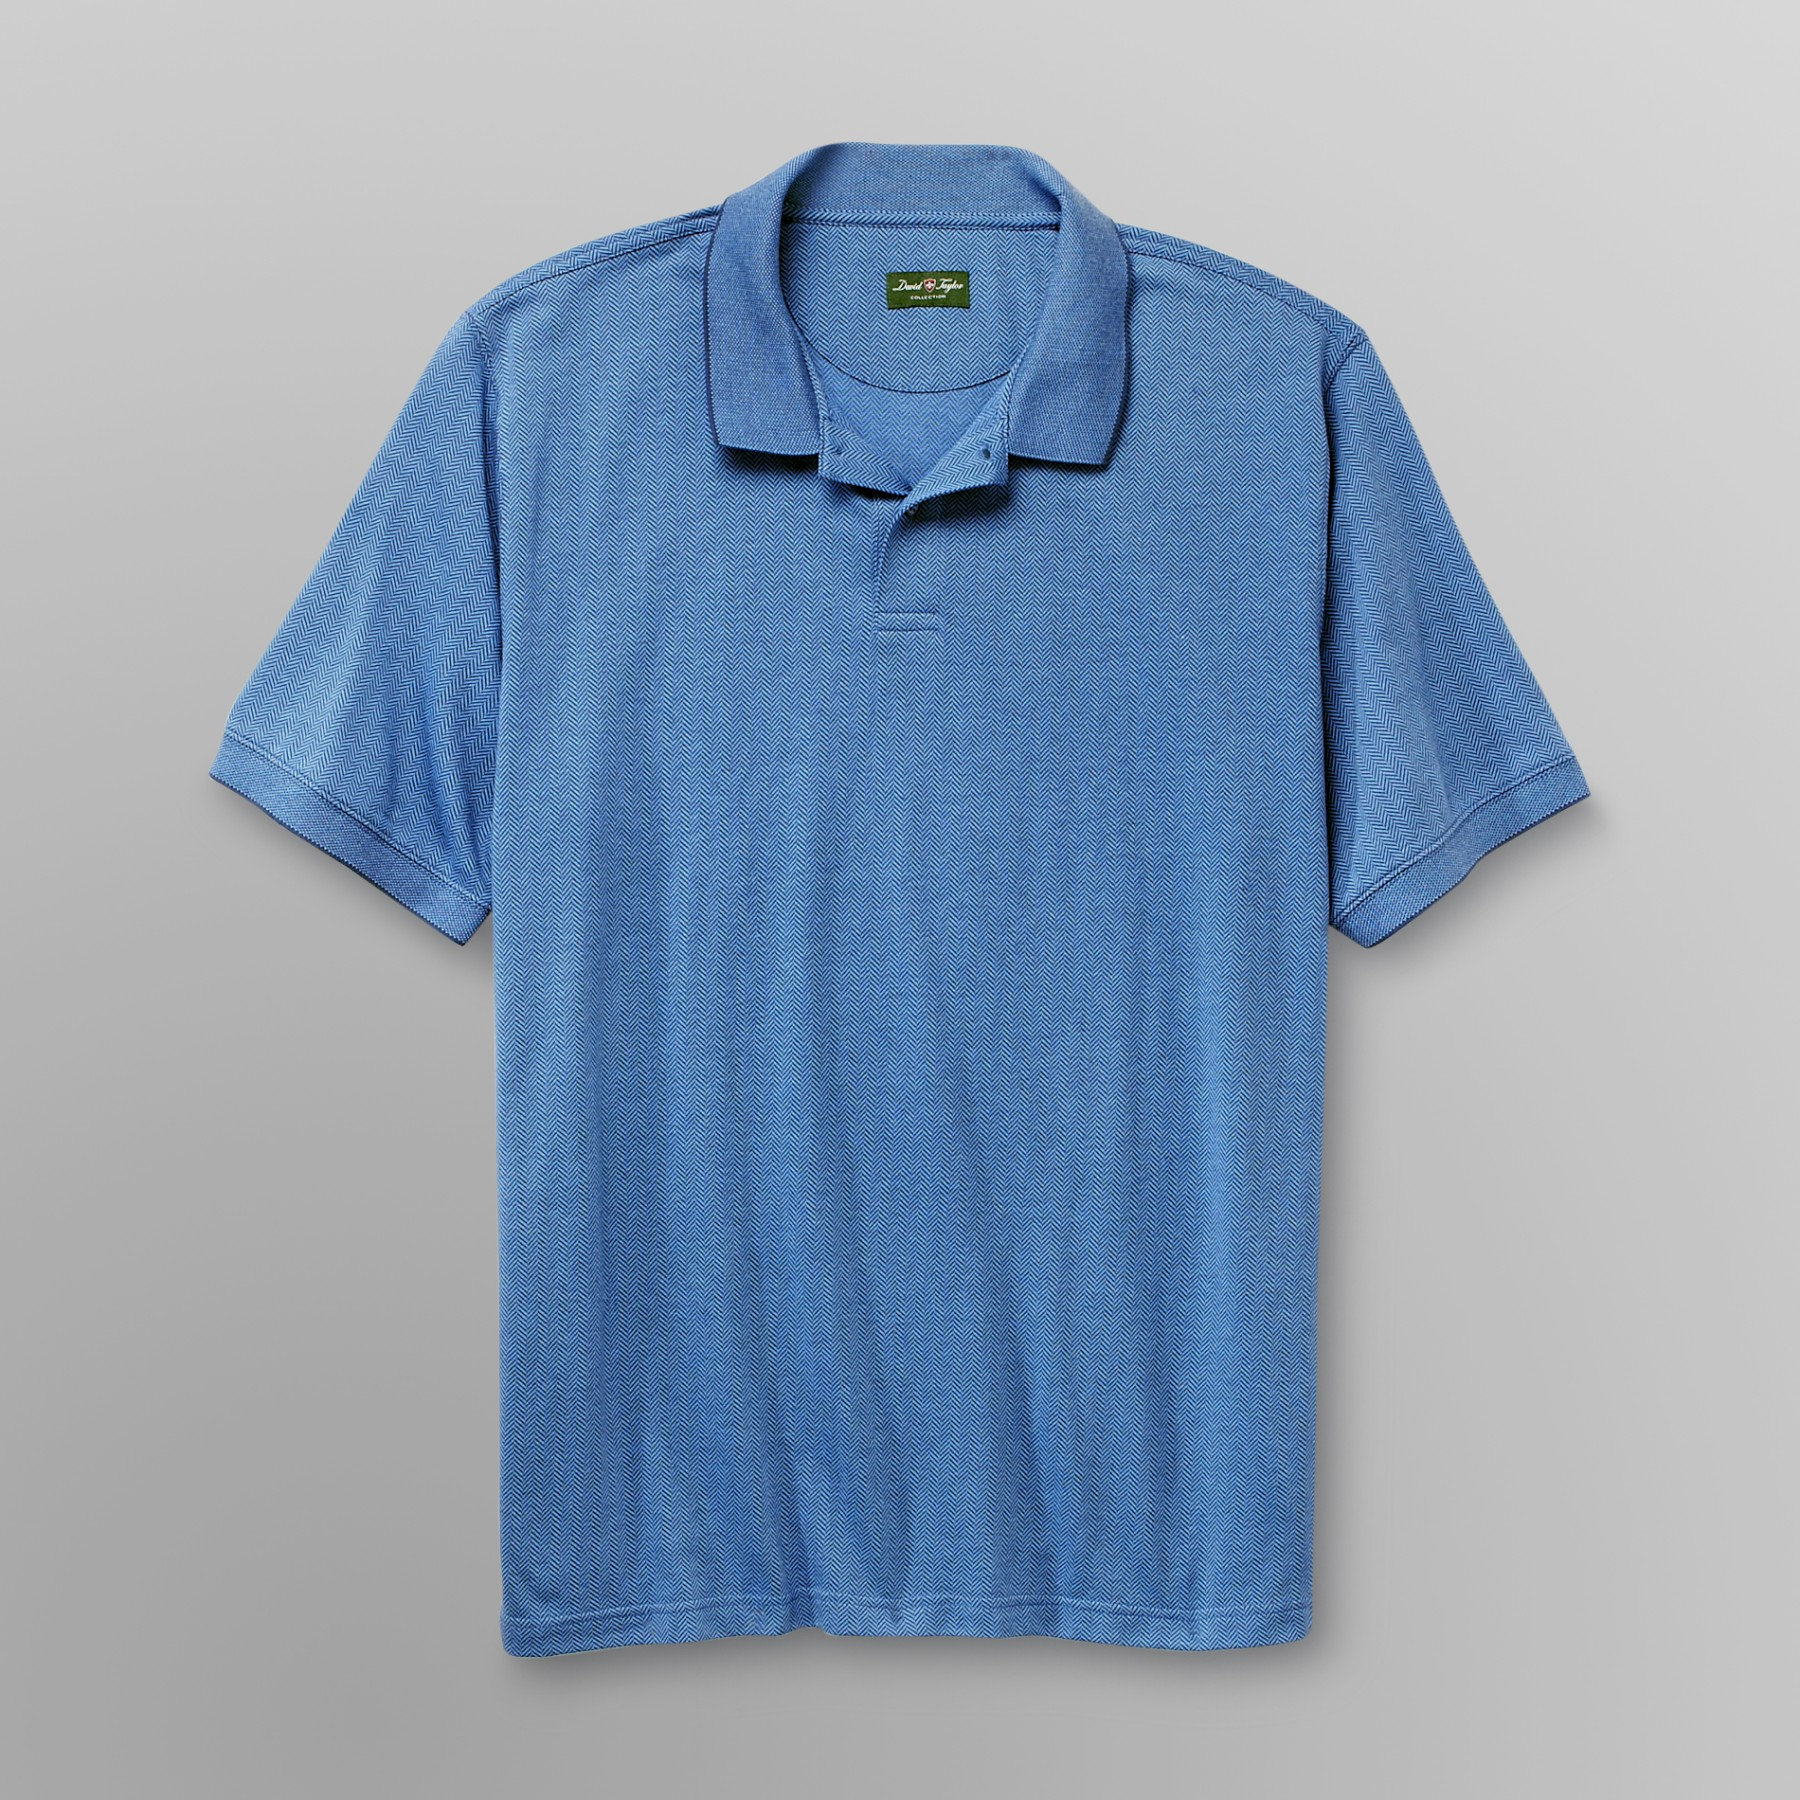 David Taylor Men's Big & Tall Jacquard Polo Shirt - Herringbone at Kmart.com